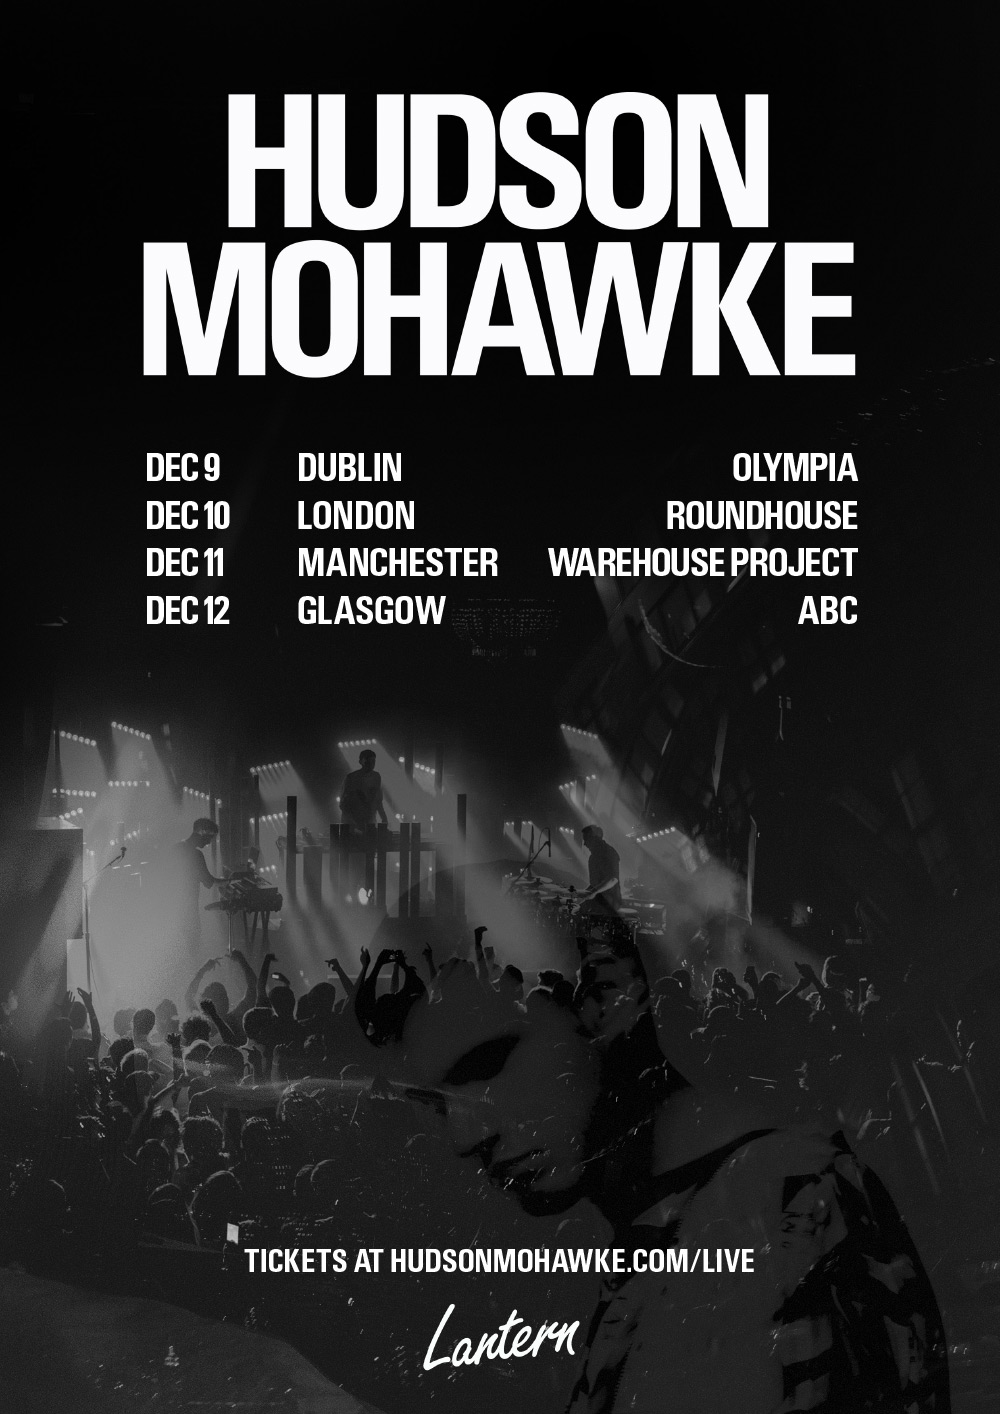 New UK Dates announced for December